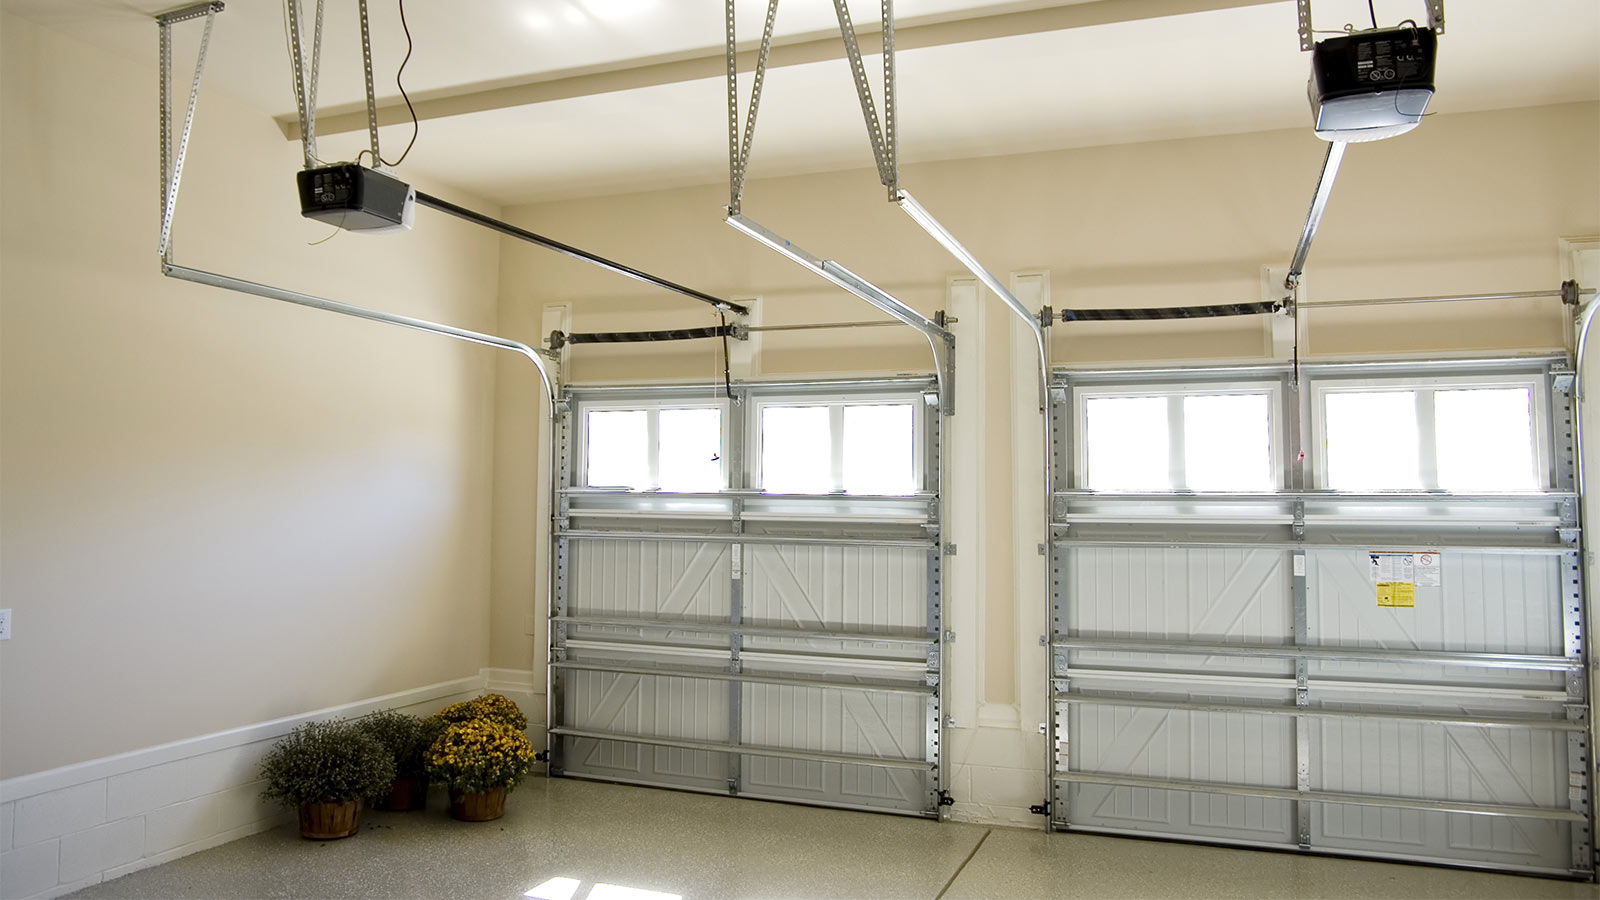 Sectional Garage Doors from Window Roller Shutters Woking suppliers.